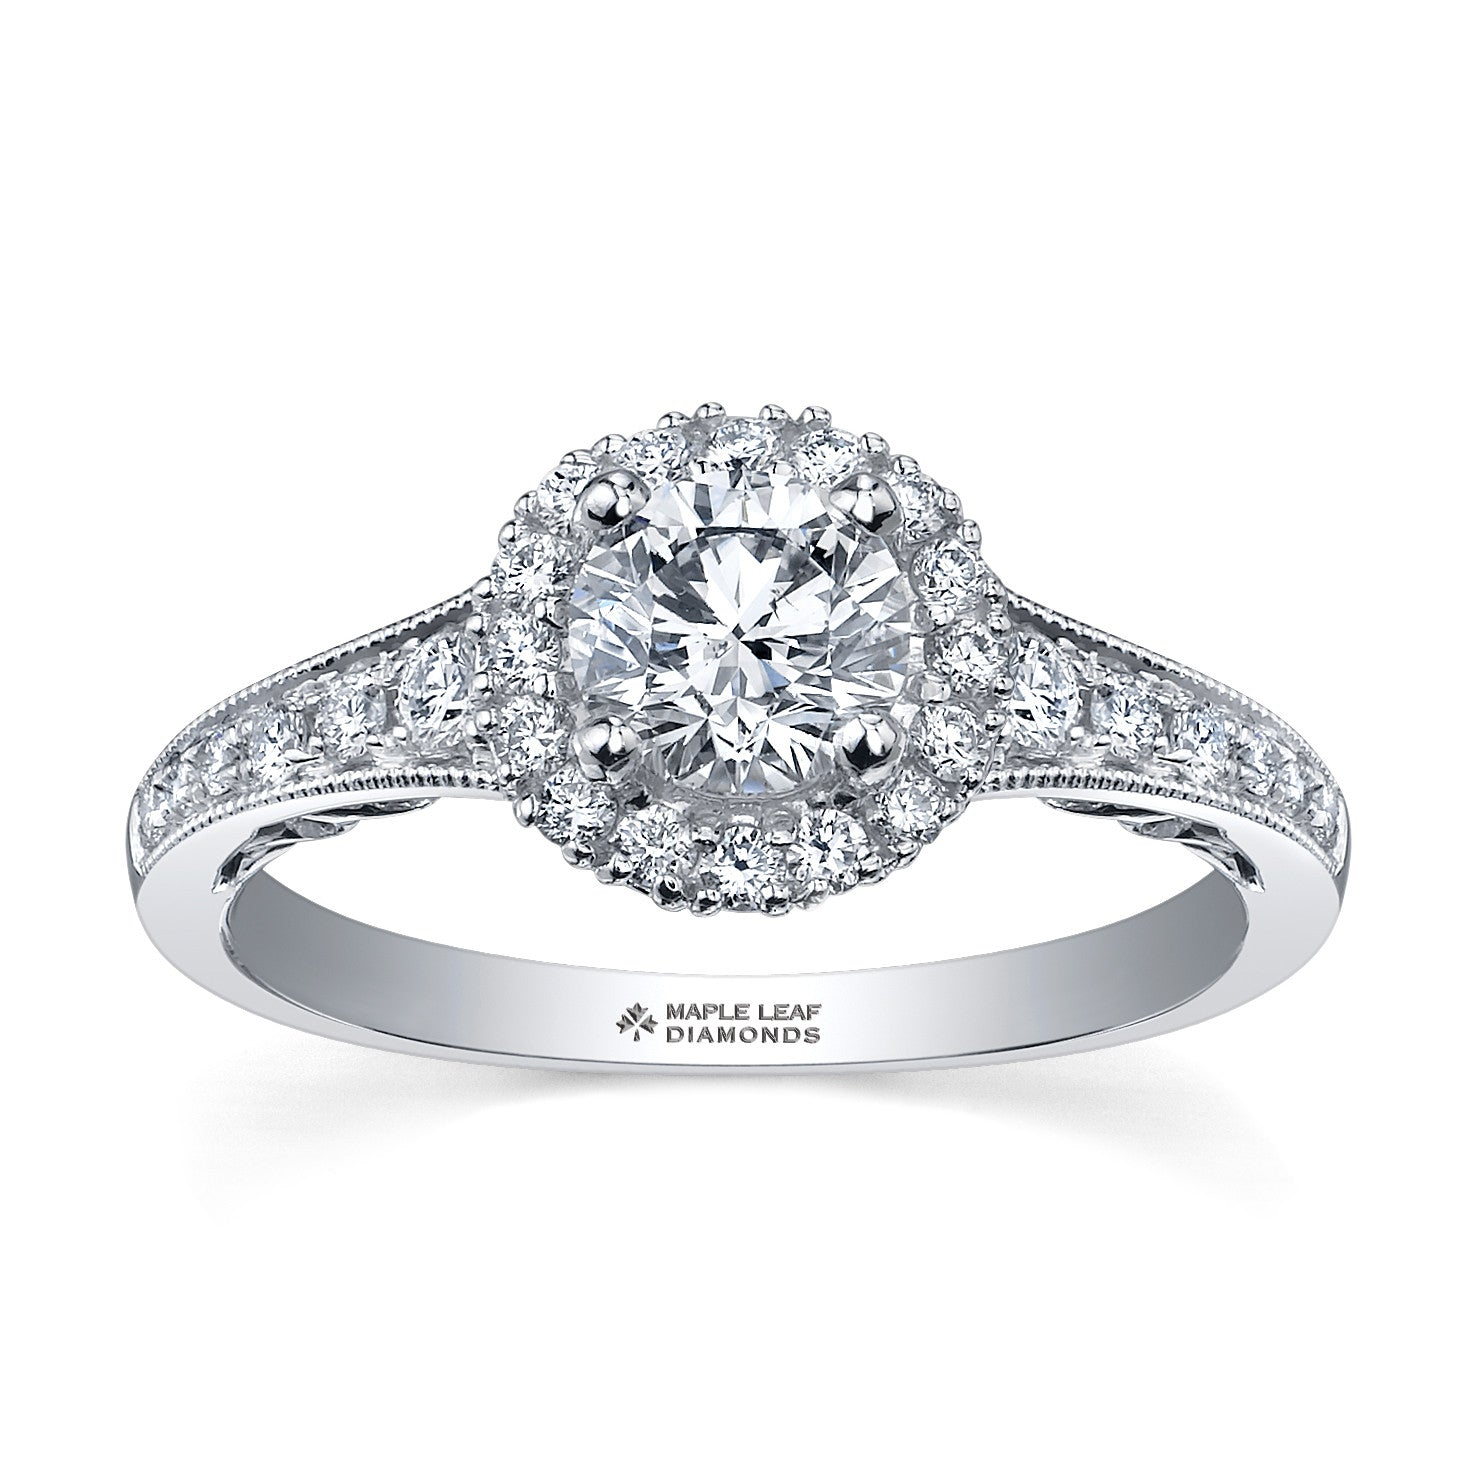 engagement melissa harris ring products daimond gold shopify solitaire diamond white rings